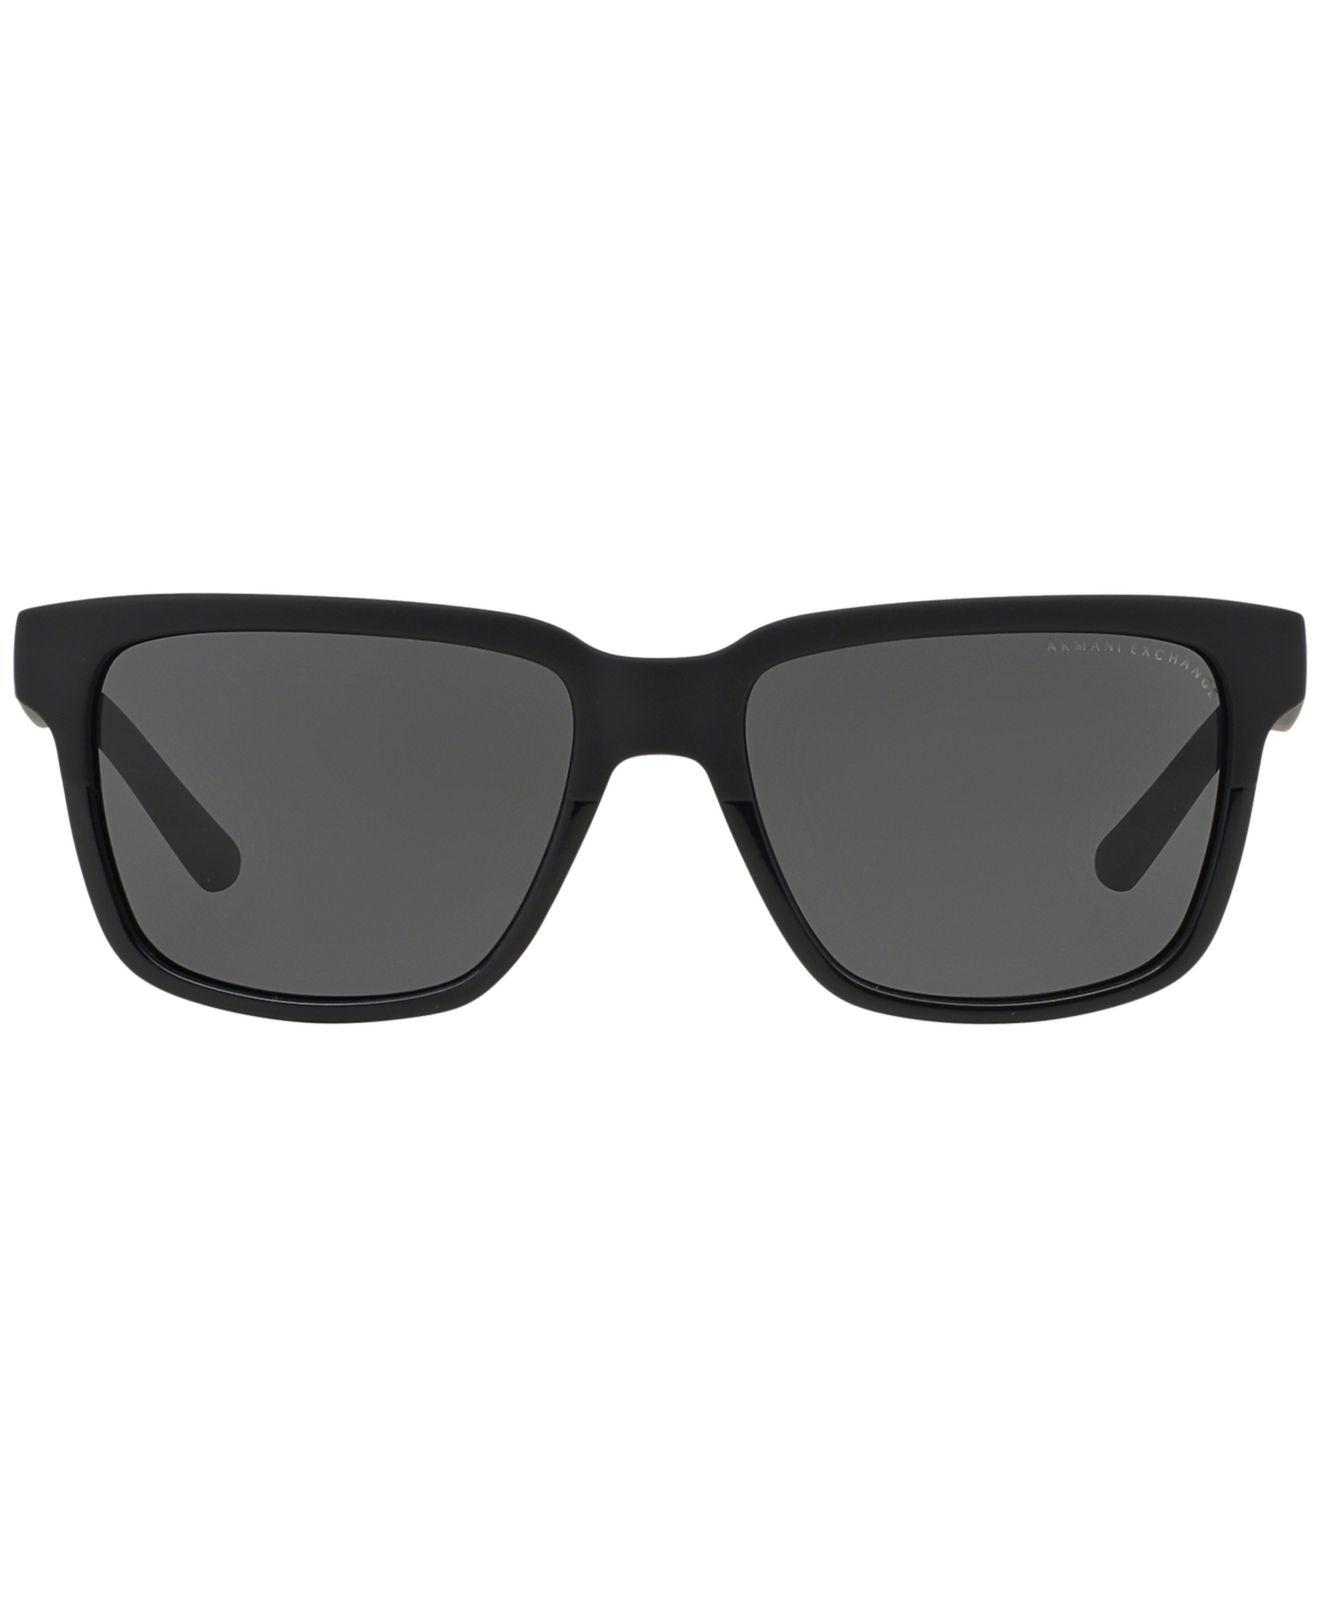 3a0d9b9ddaa Lyst - Armani Exchange Ax Sunglasses